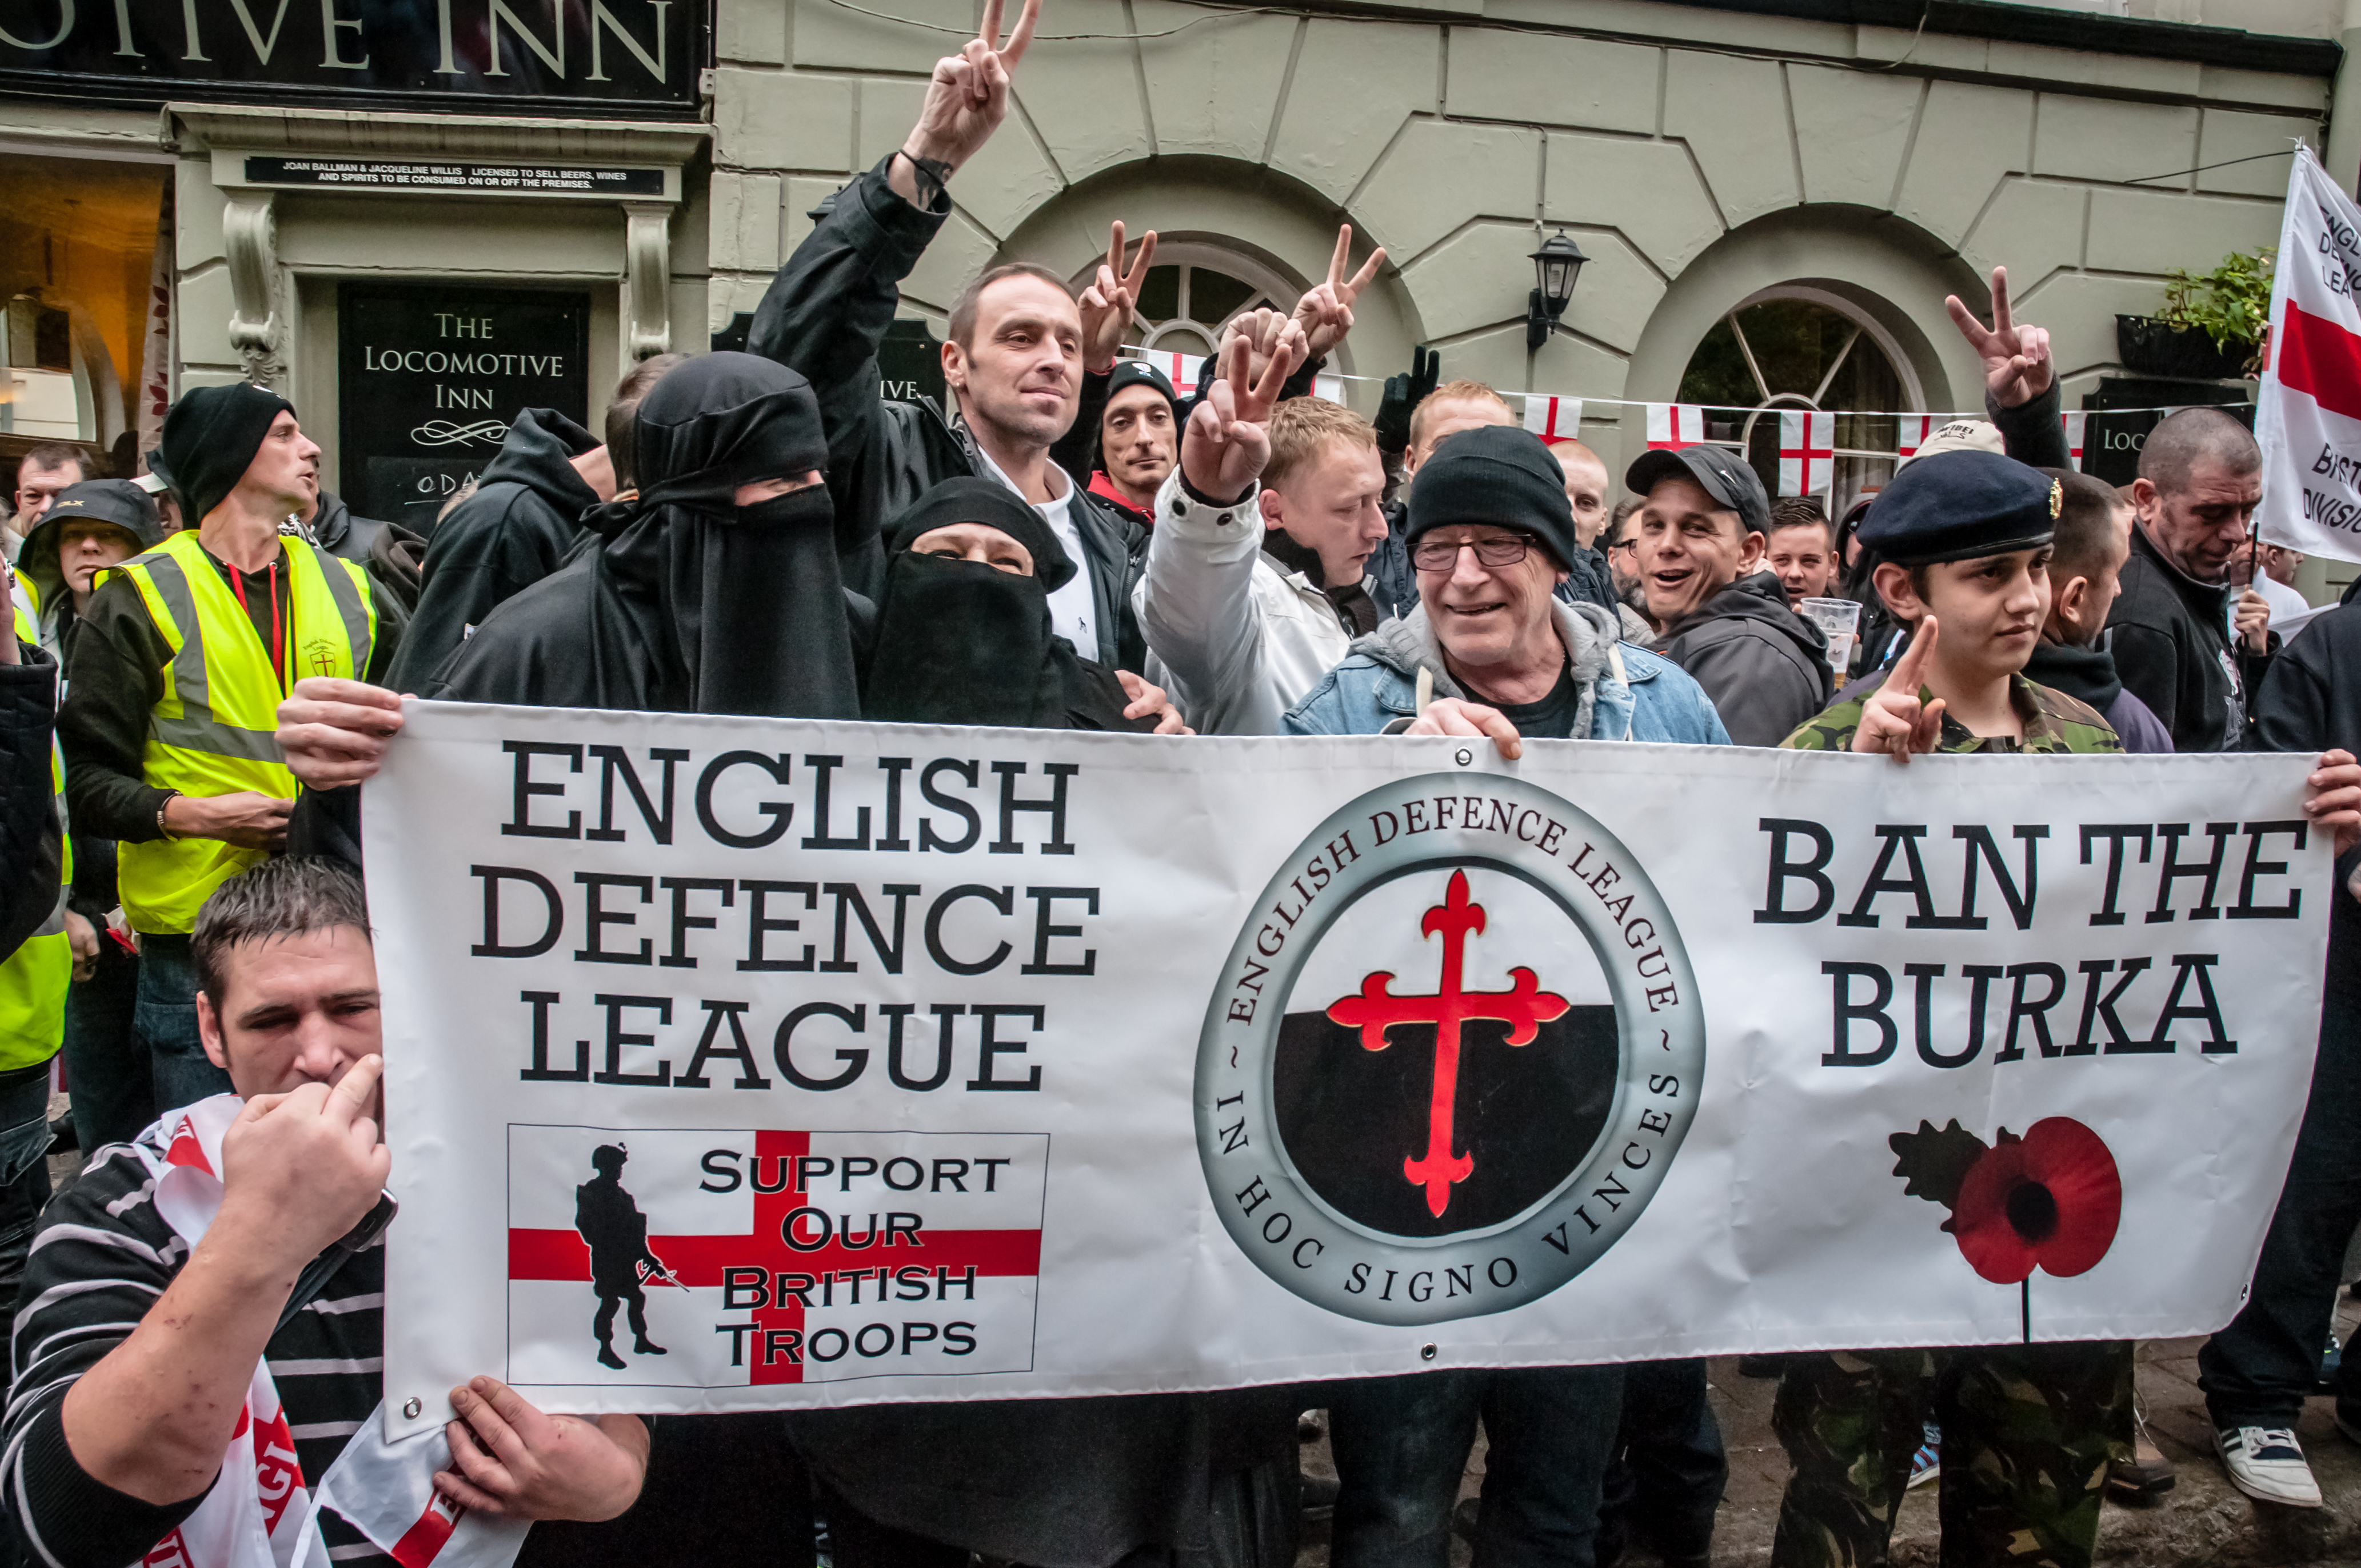 The English Defence League in a rally against islam [Clive Chilvers/Shutterstock]